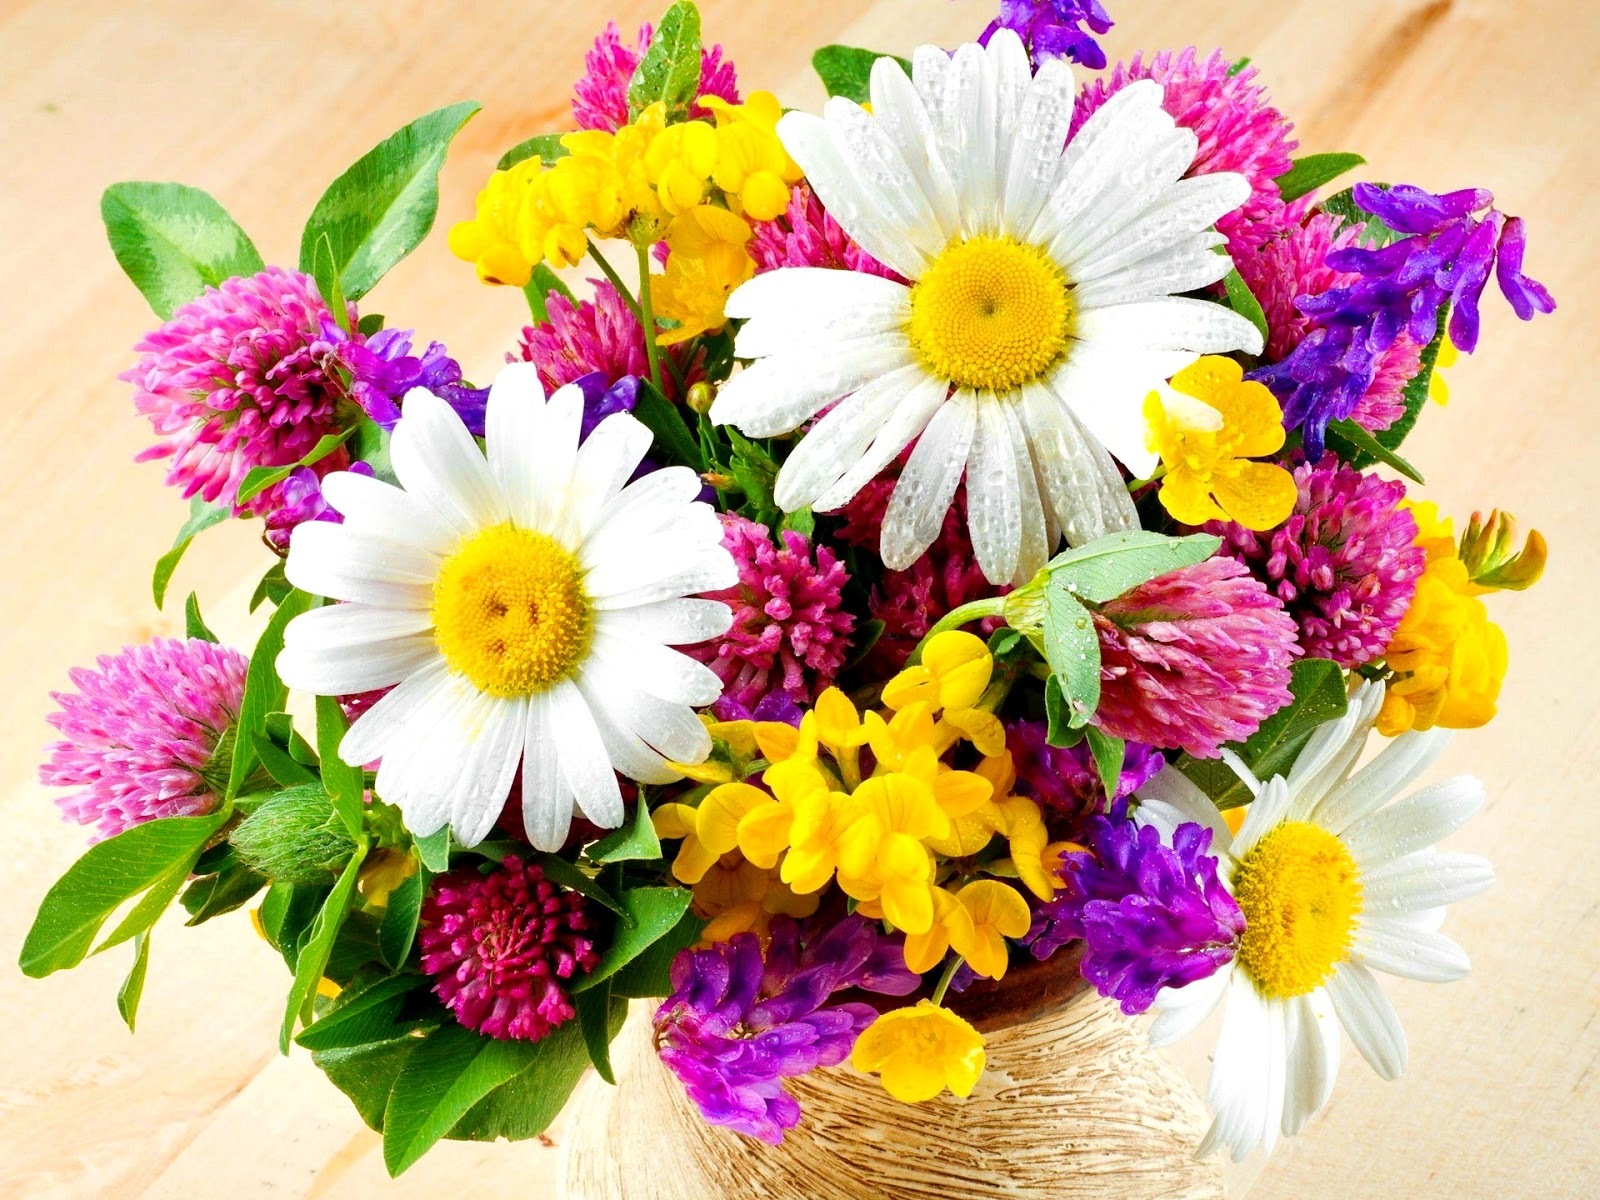 Beautiful Fresh Flowers ~ Flowers Wallpapers